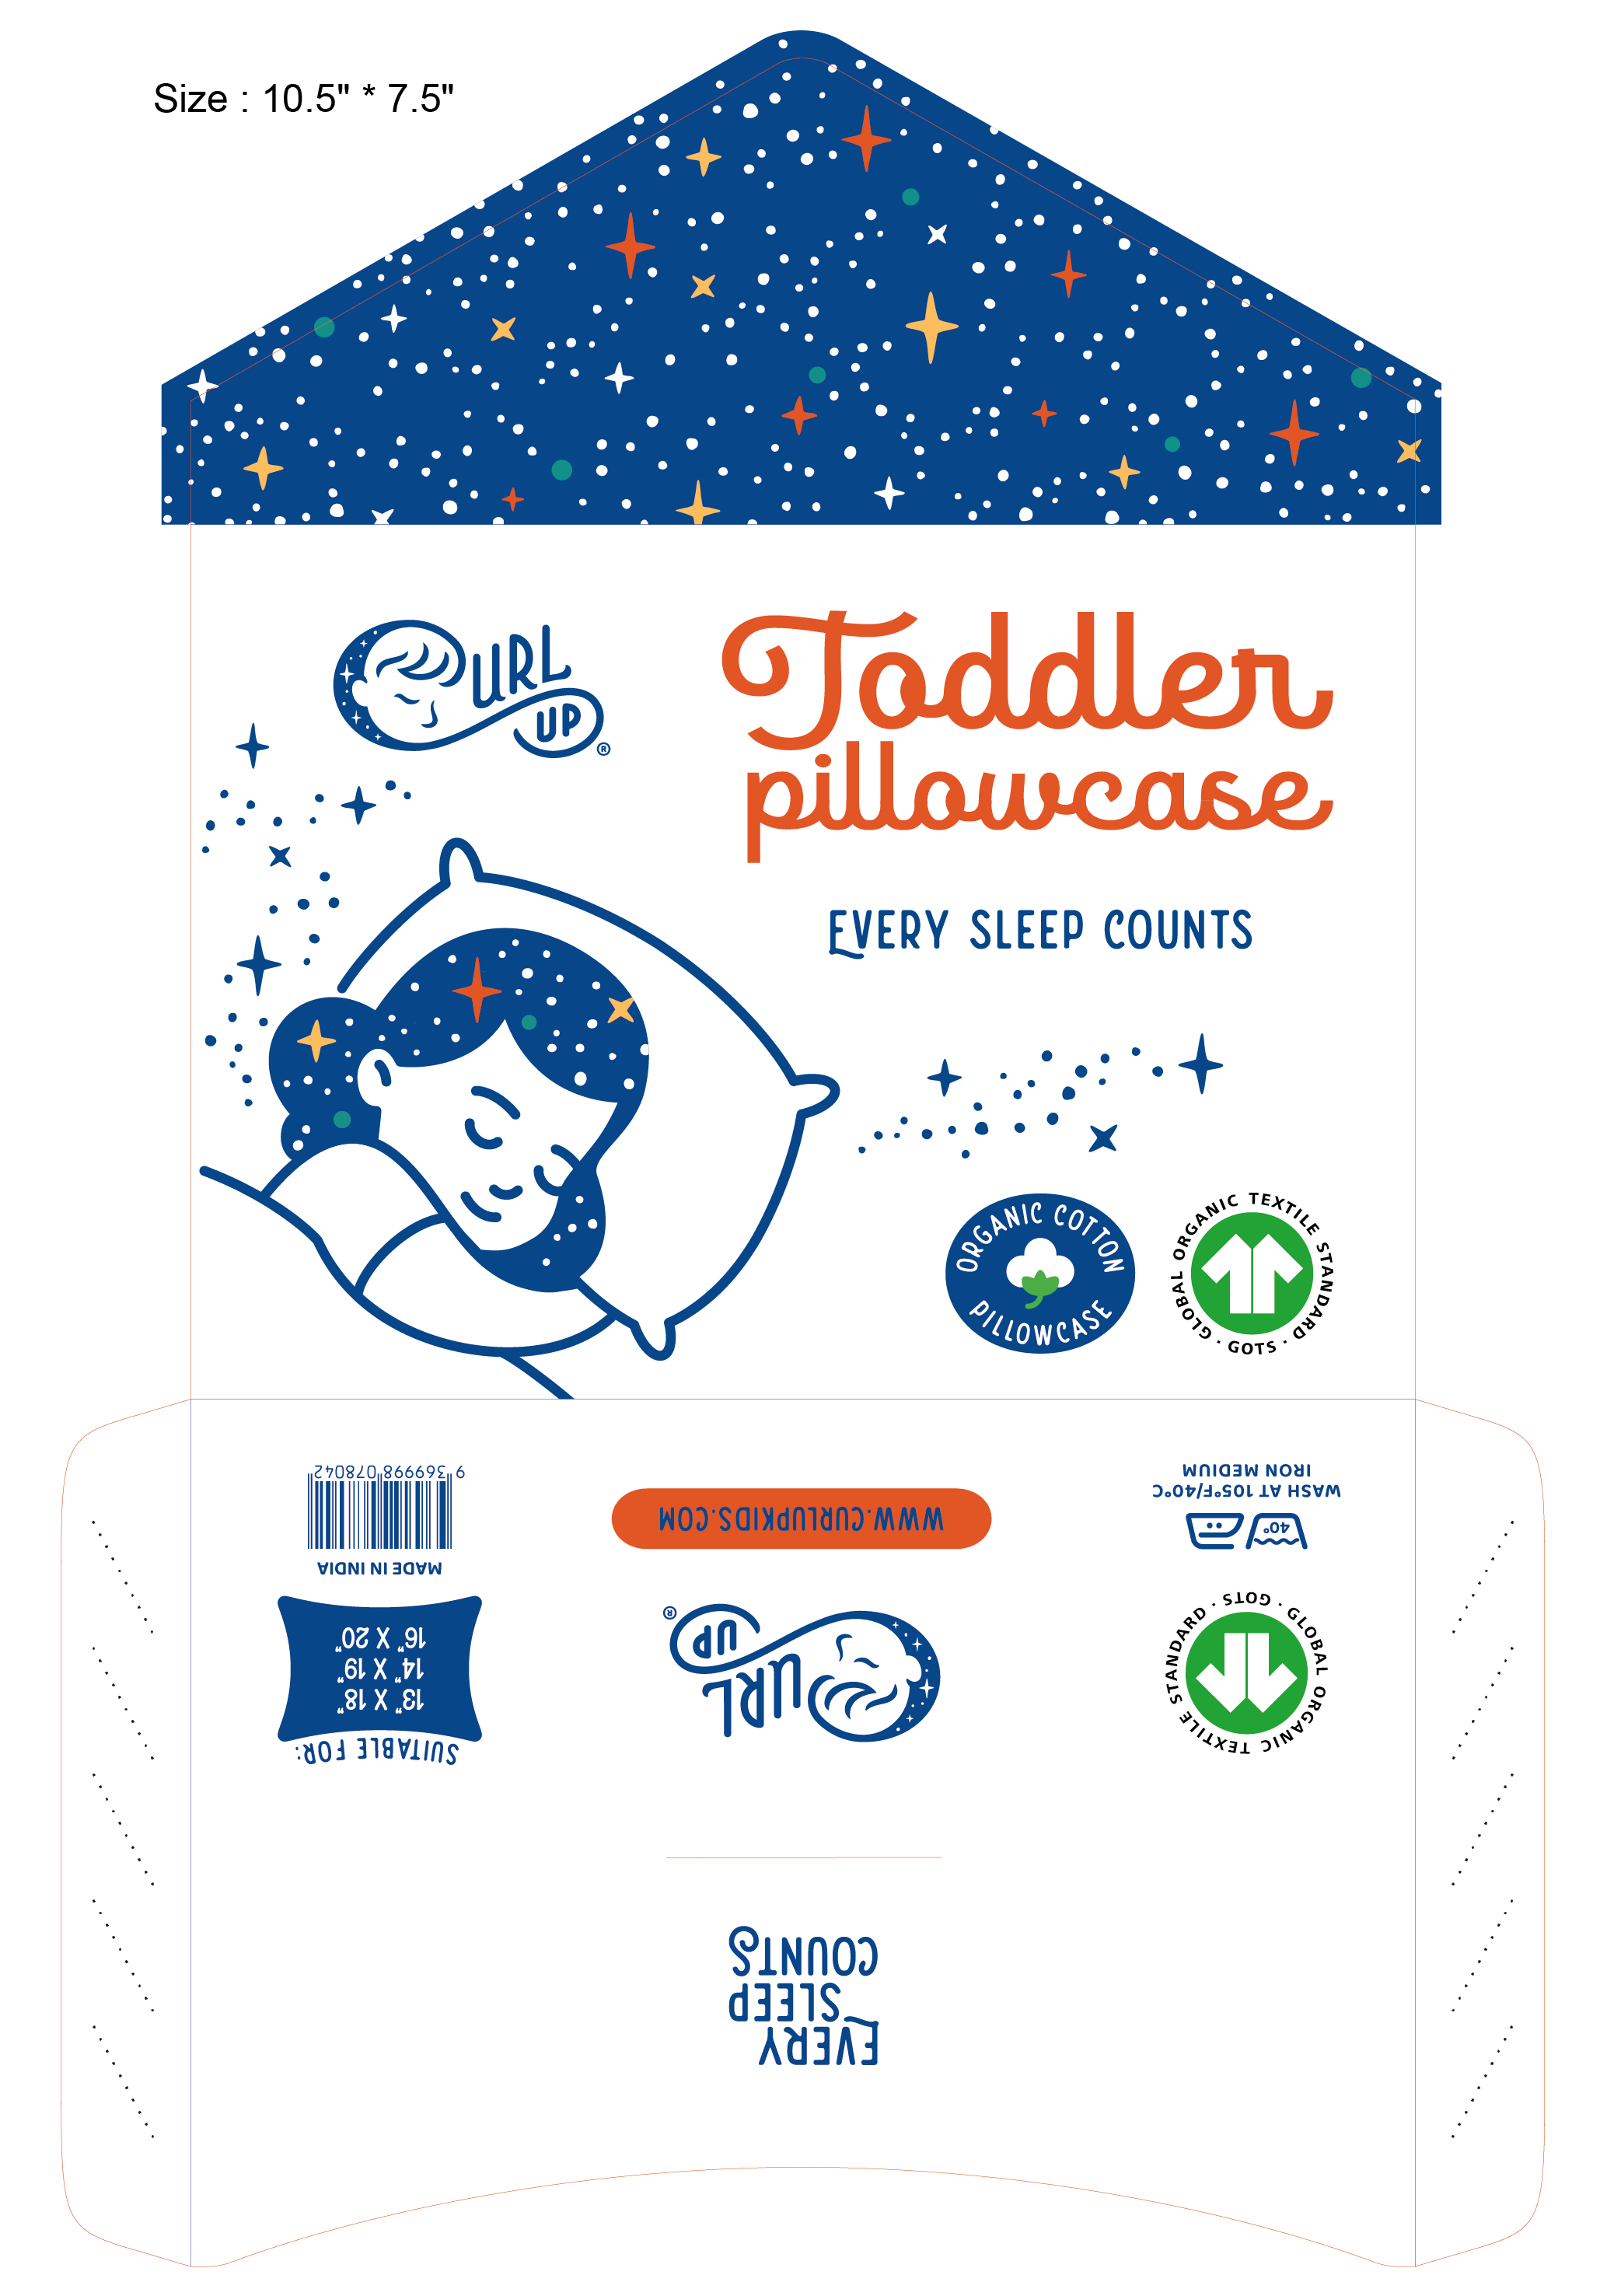 Curl Up Pillowcase Packaging and Insert Design